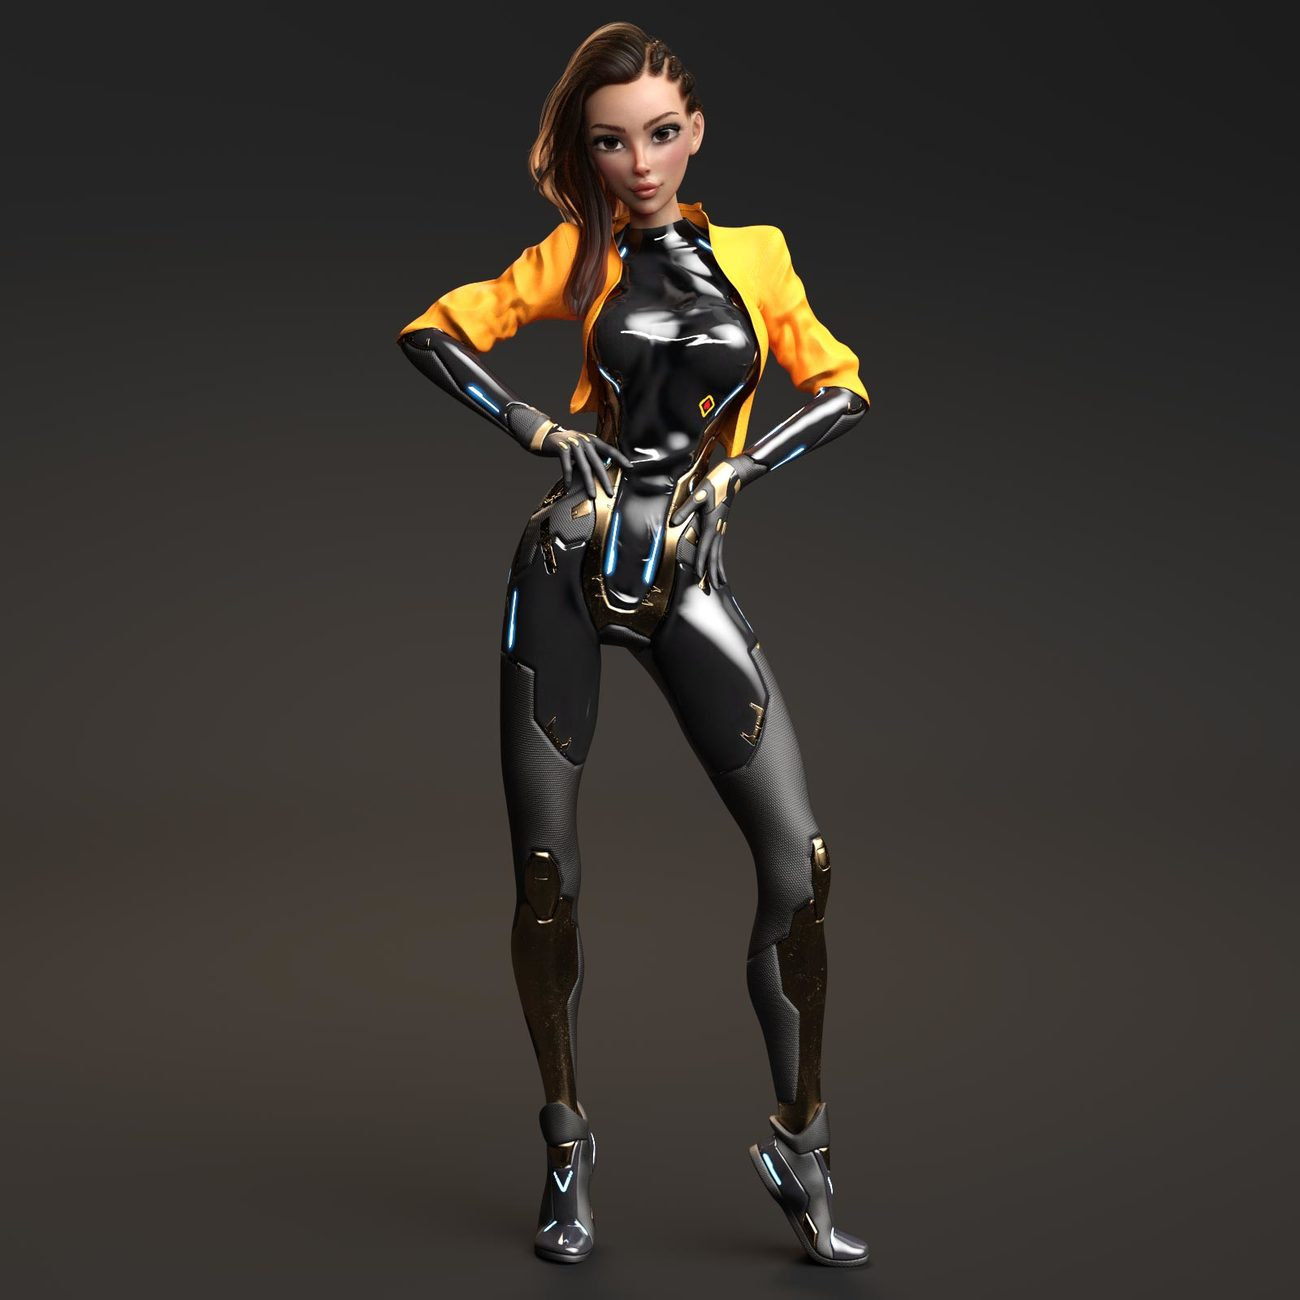 Material Addon for the Dalos Suit by benalive